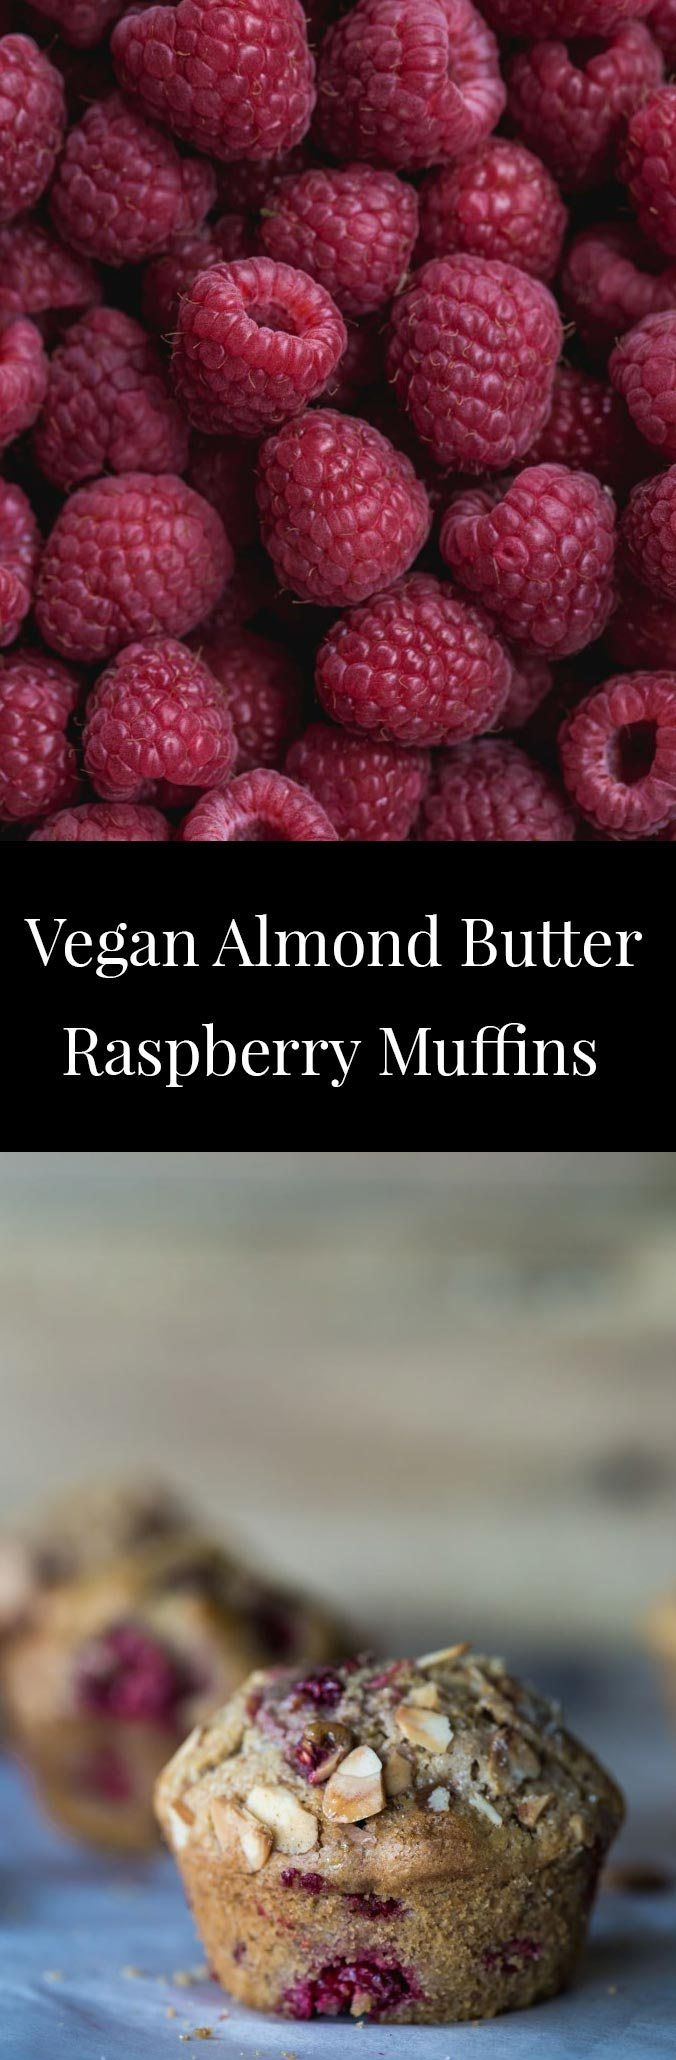 These Vegan Almond Butter Raspberry Muffins are filled with juicy, sweet raspberries nestled within an almond infused moist muffin cake.